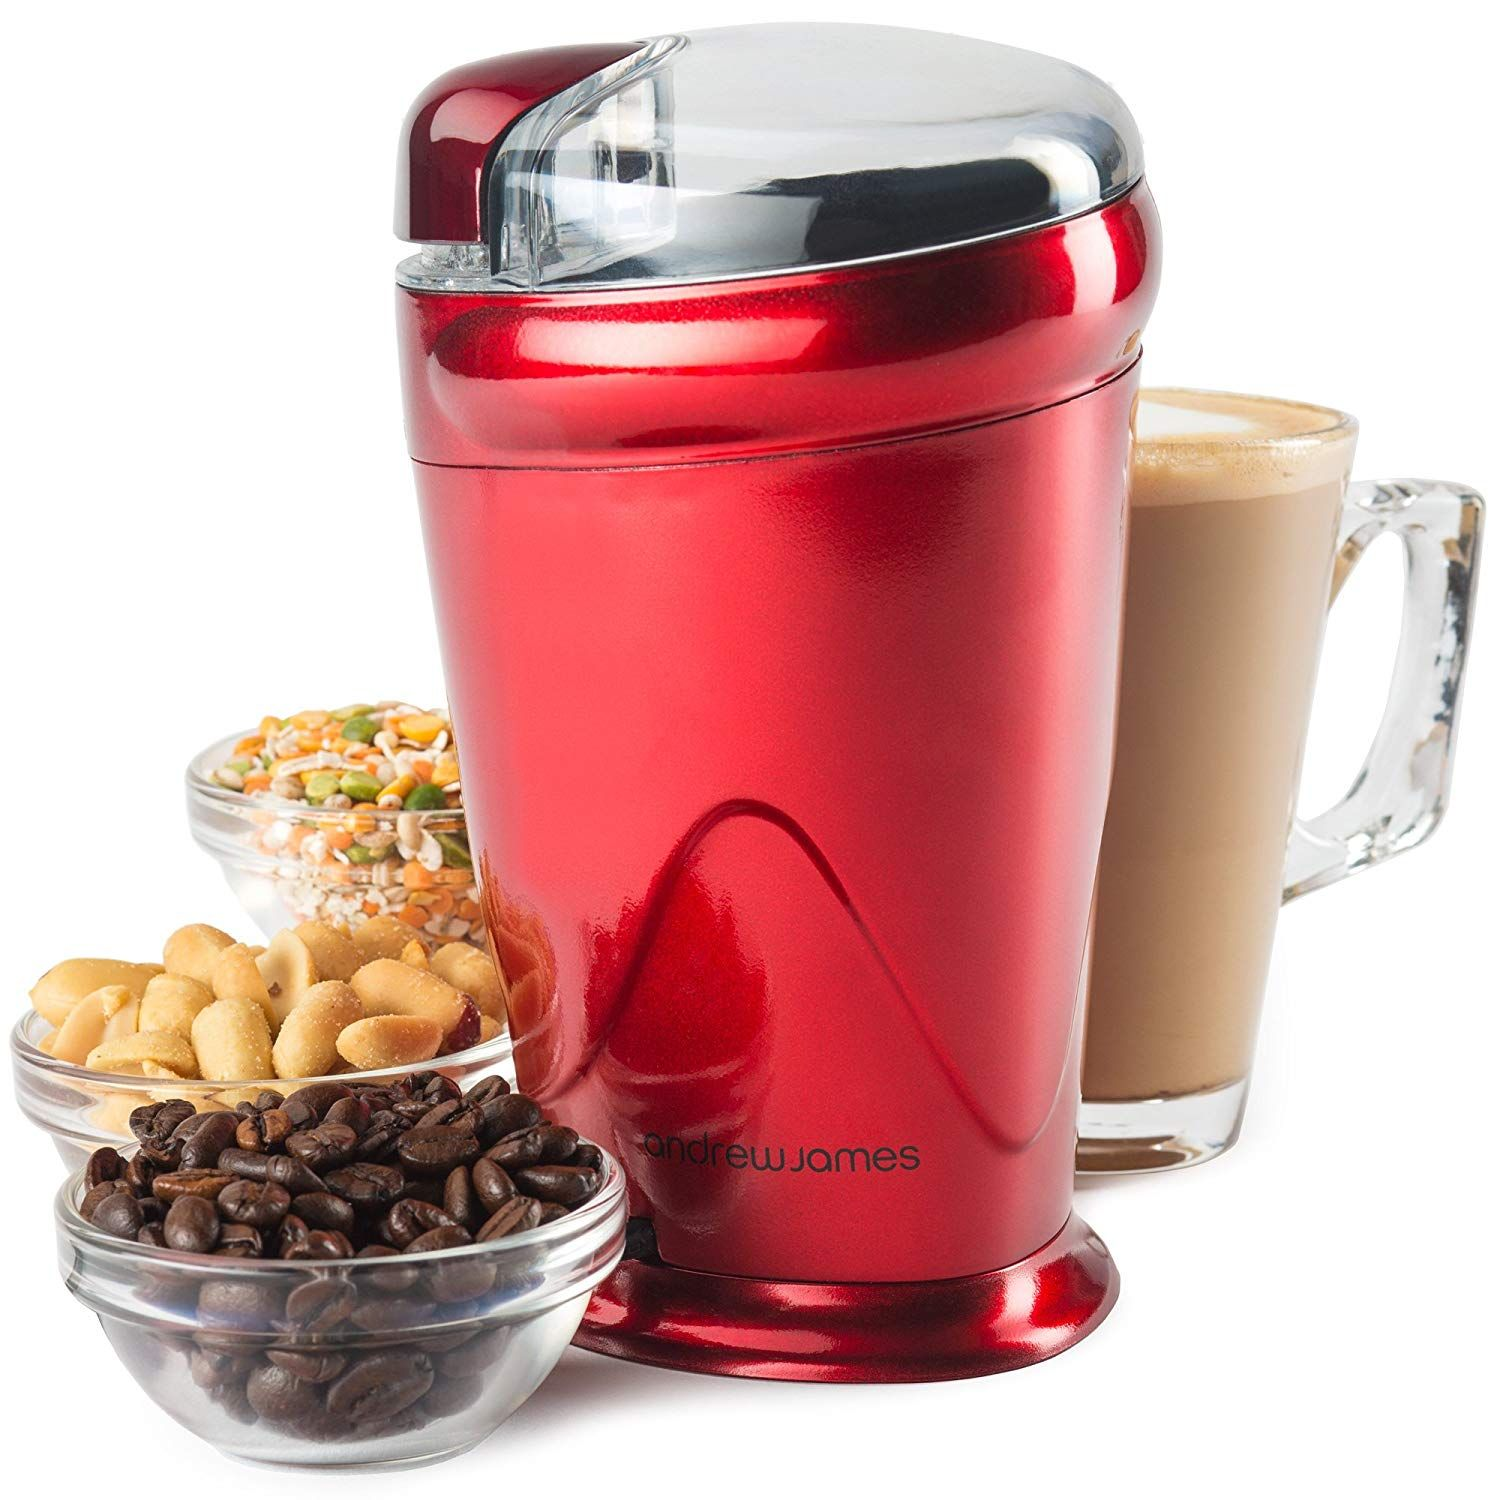 Andrew James Electric Coffee Grinder Powerful 150W Motor